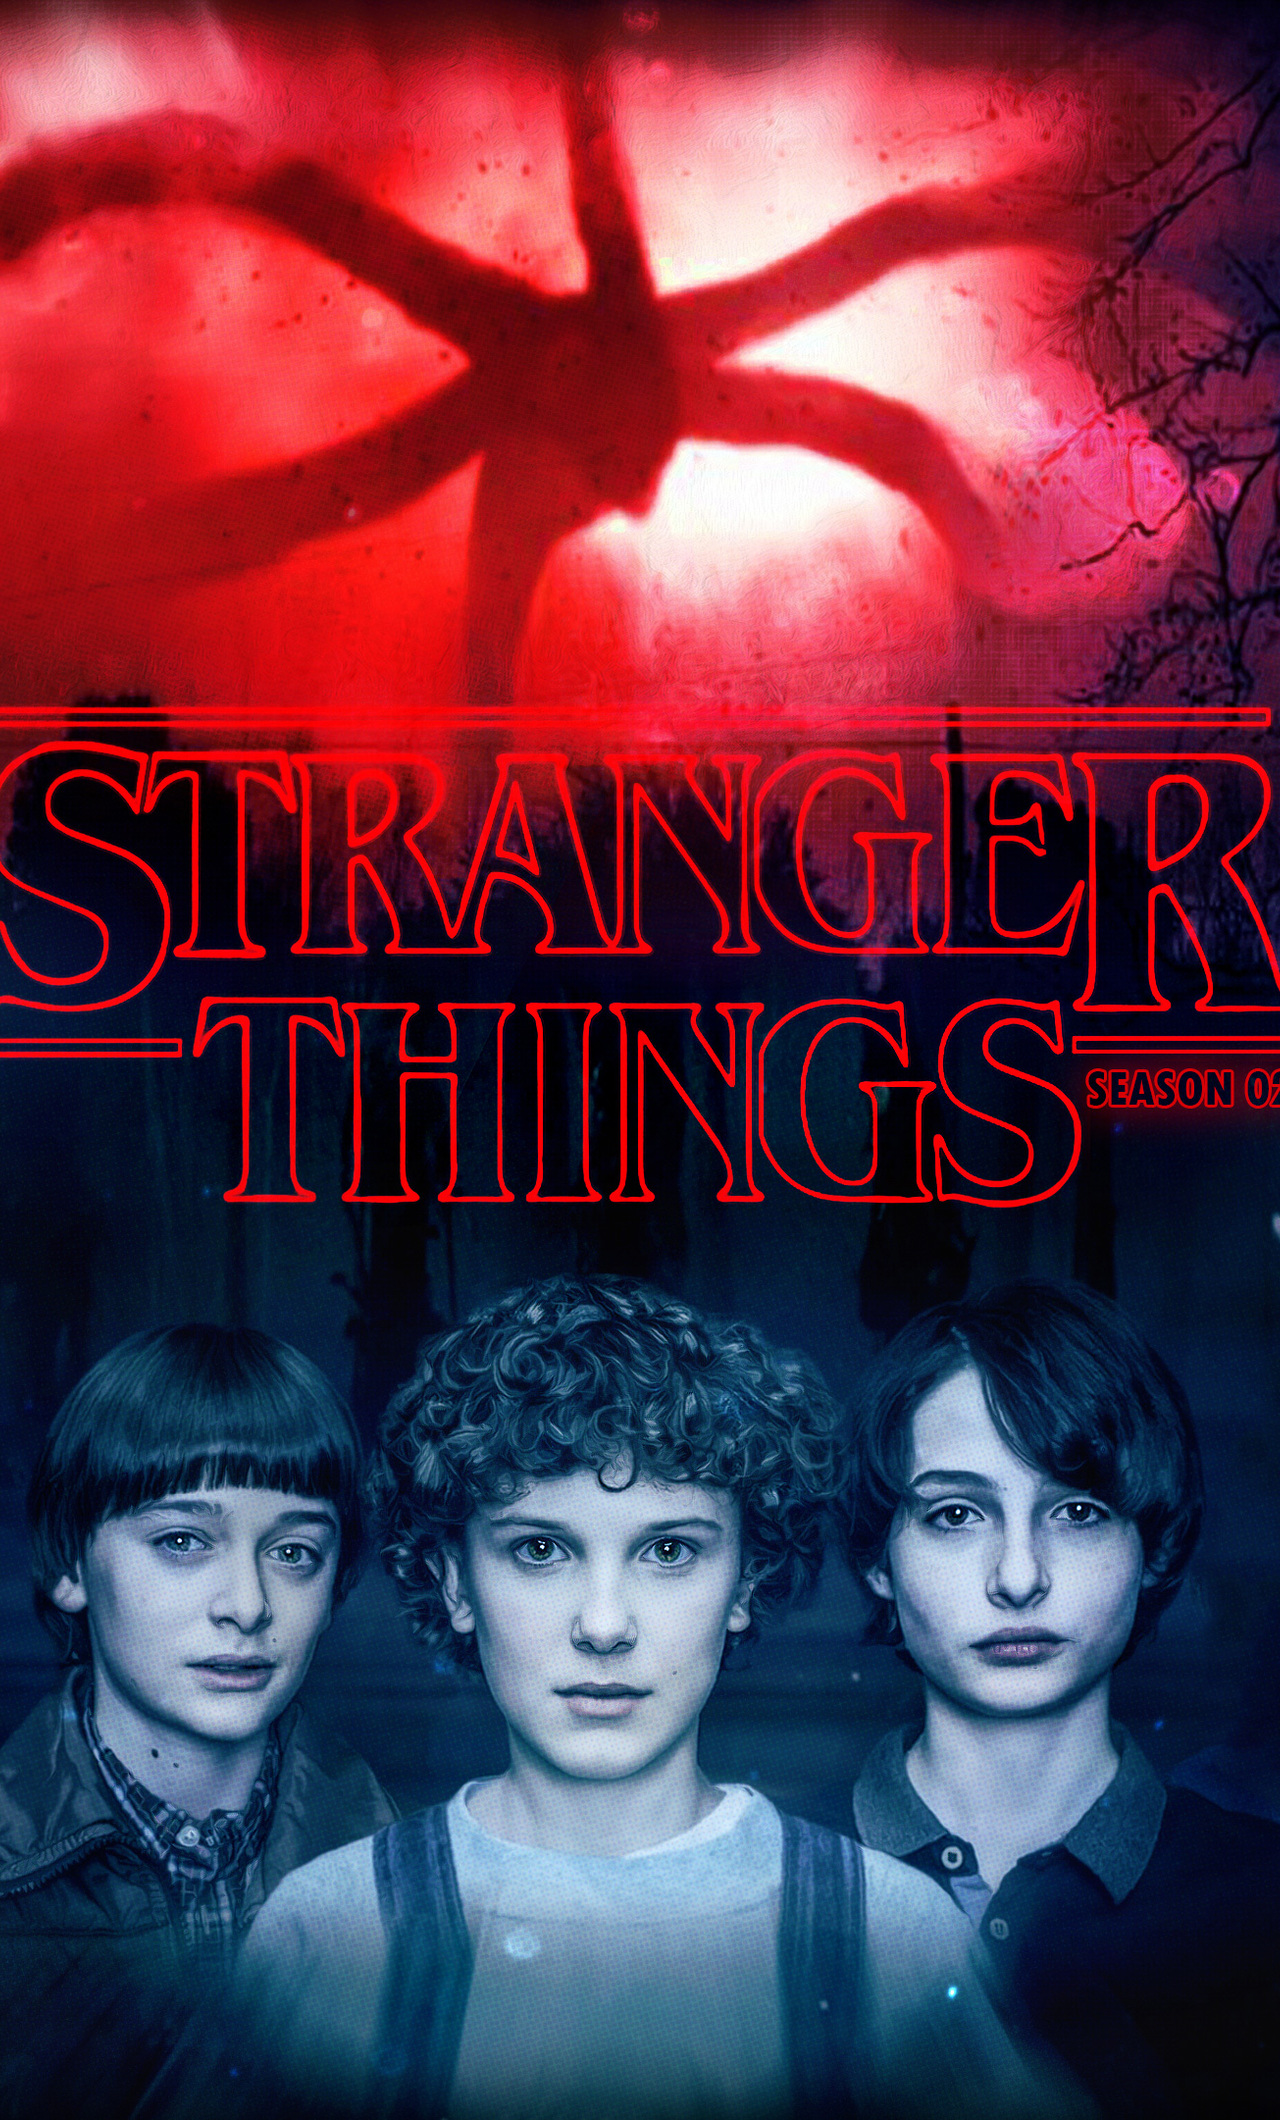 stranger-things-season-2-2017-poster-72.jpg